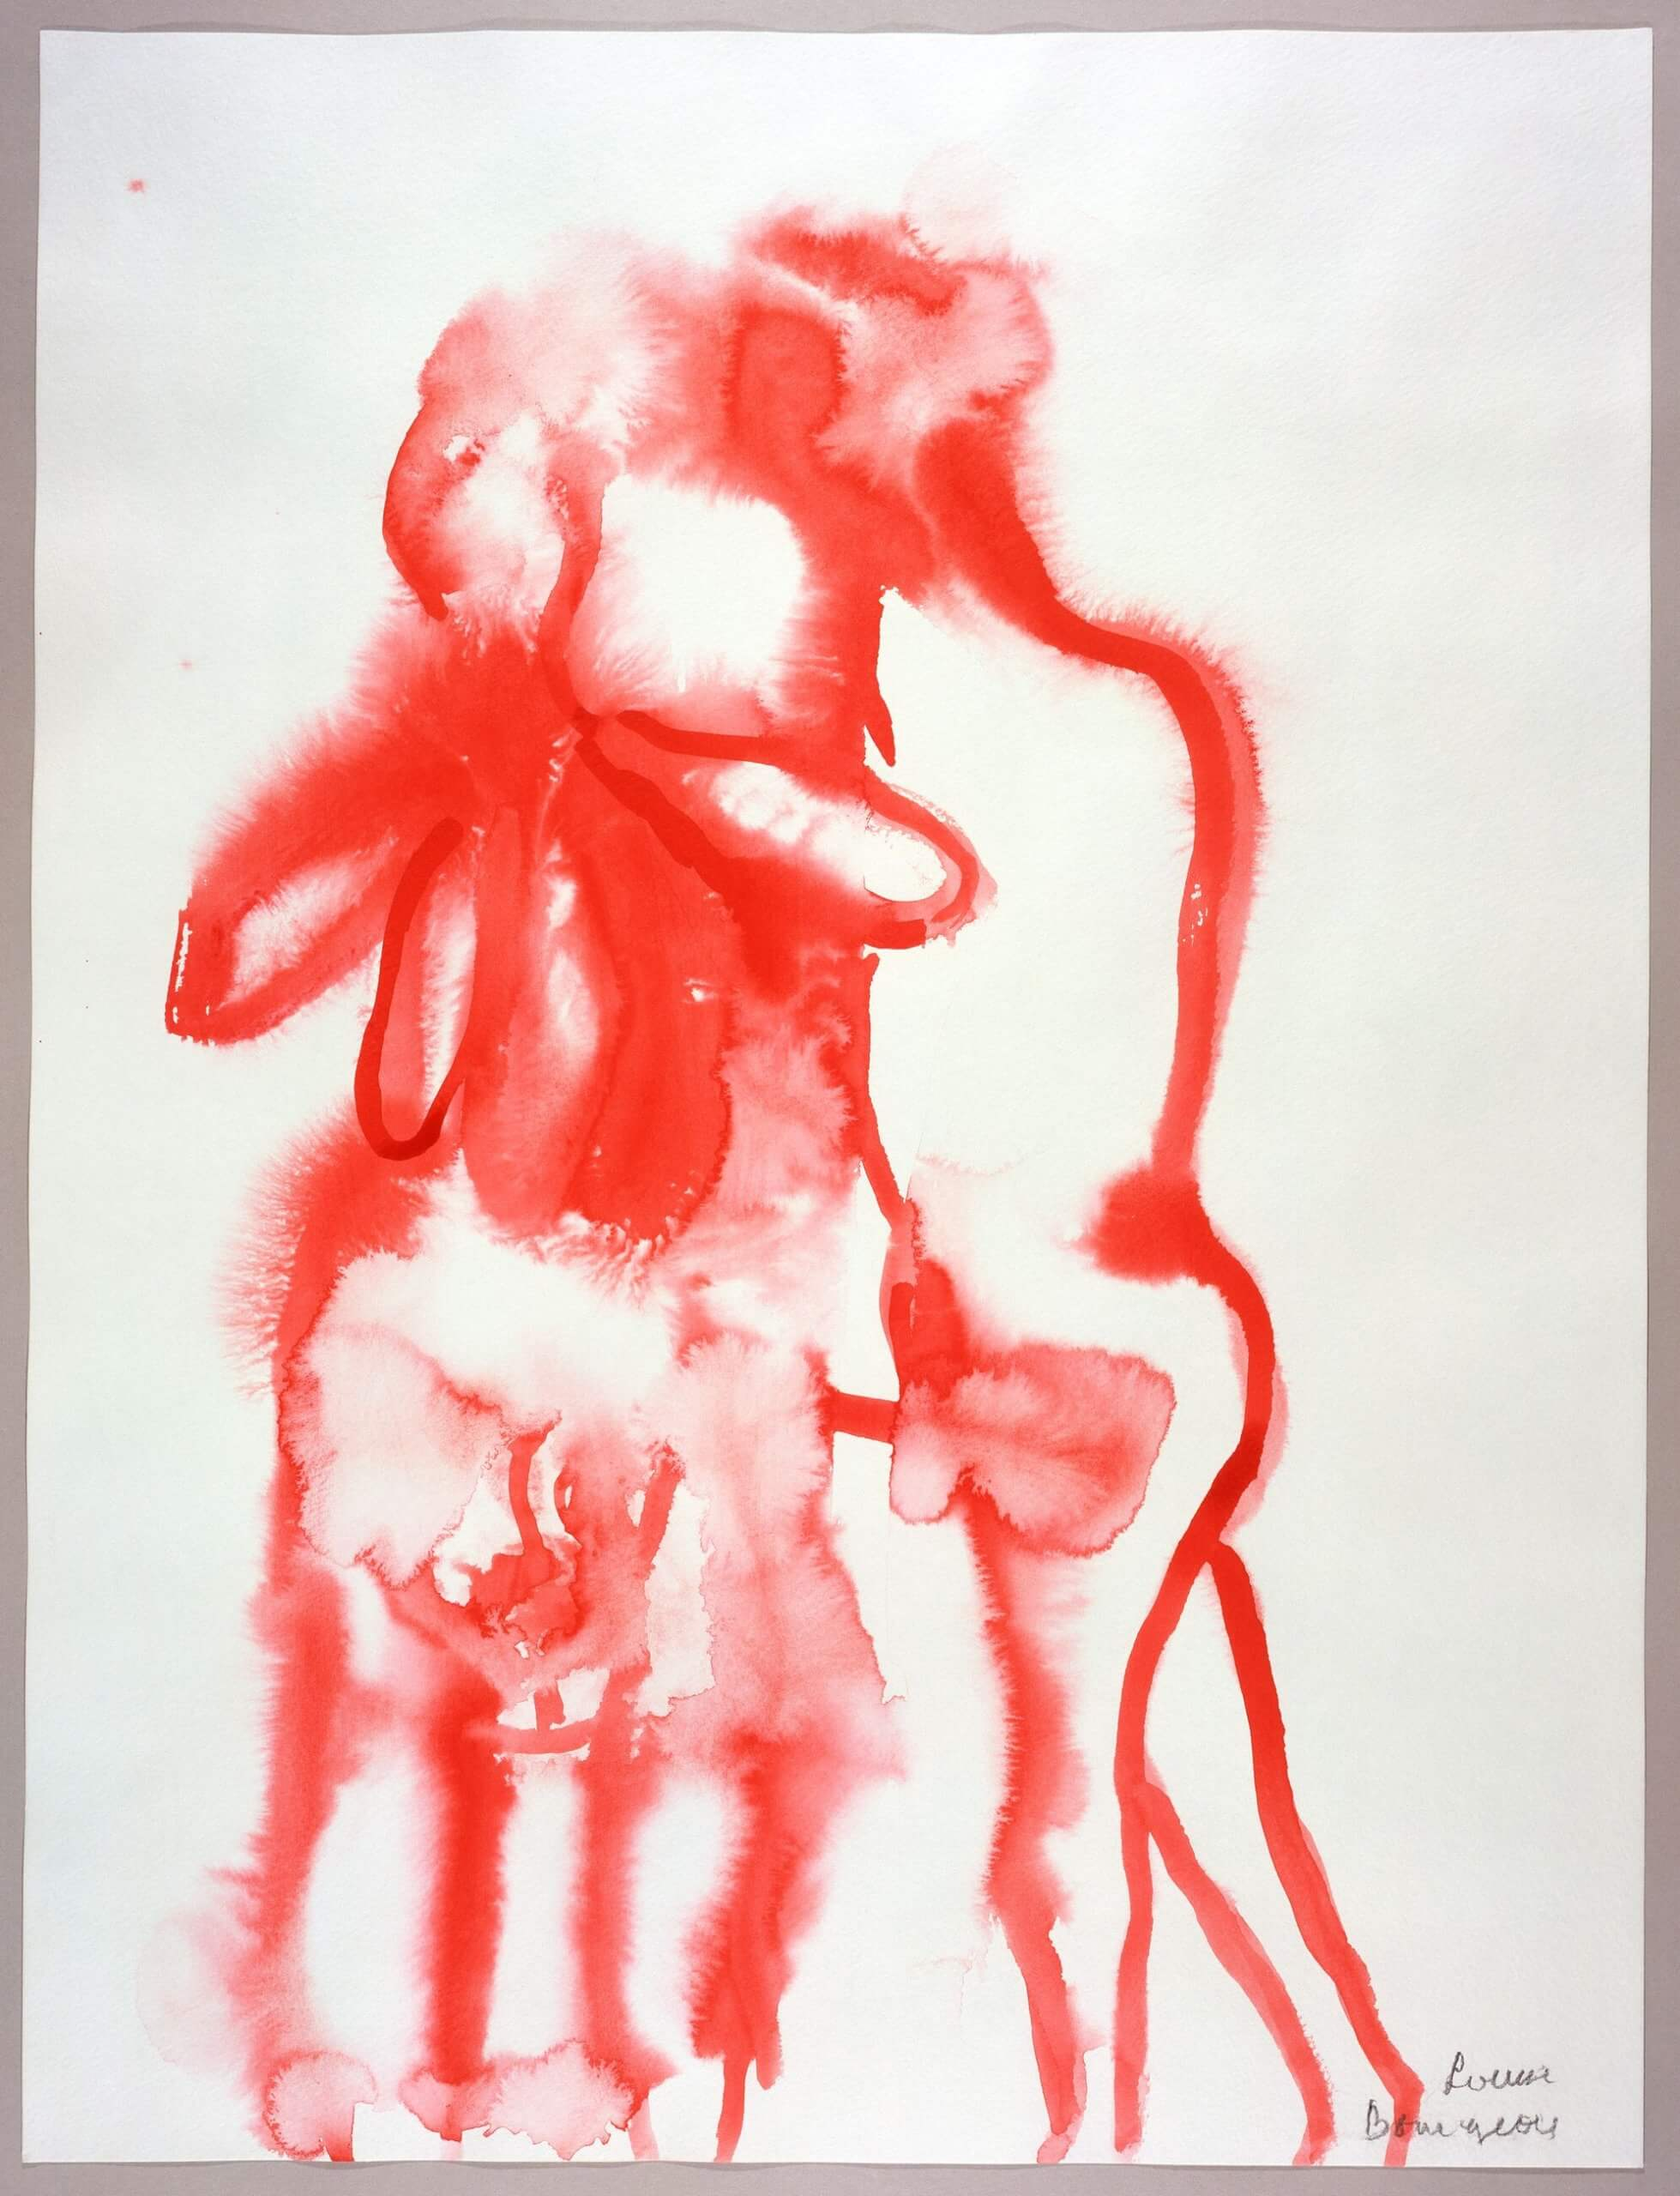 The Family Louise Bourgeois 2007 Gouache on paper, courtesy galerie Hauser & Wirth